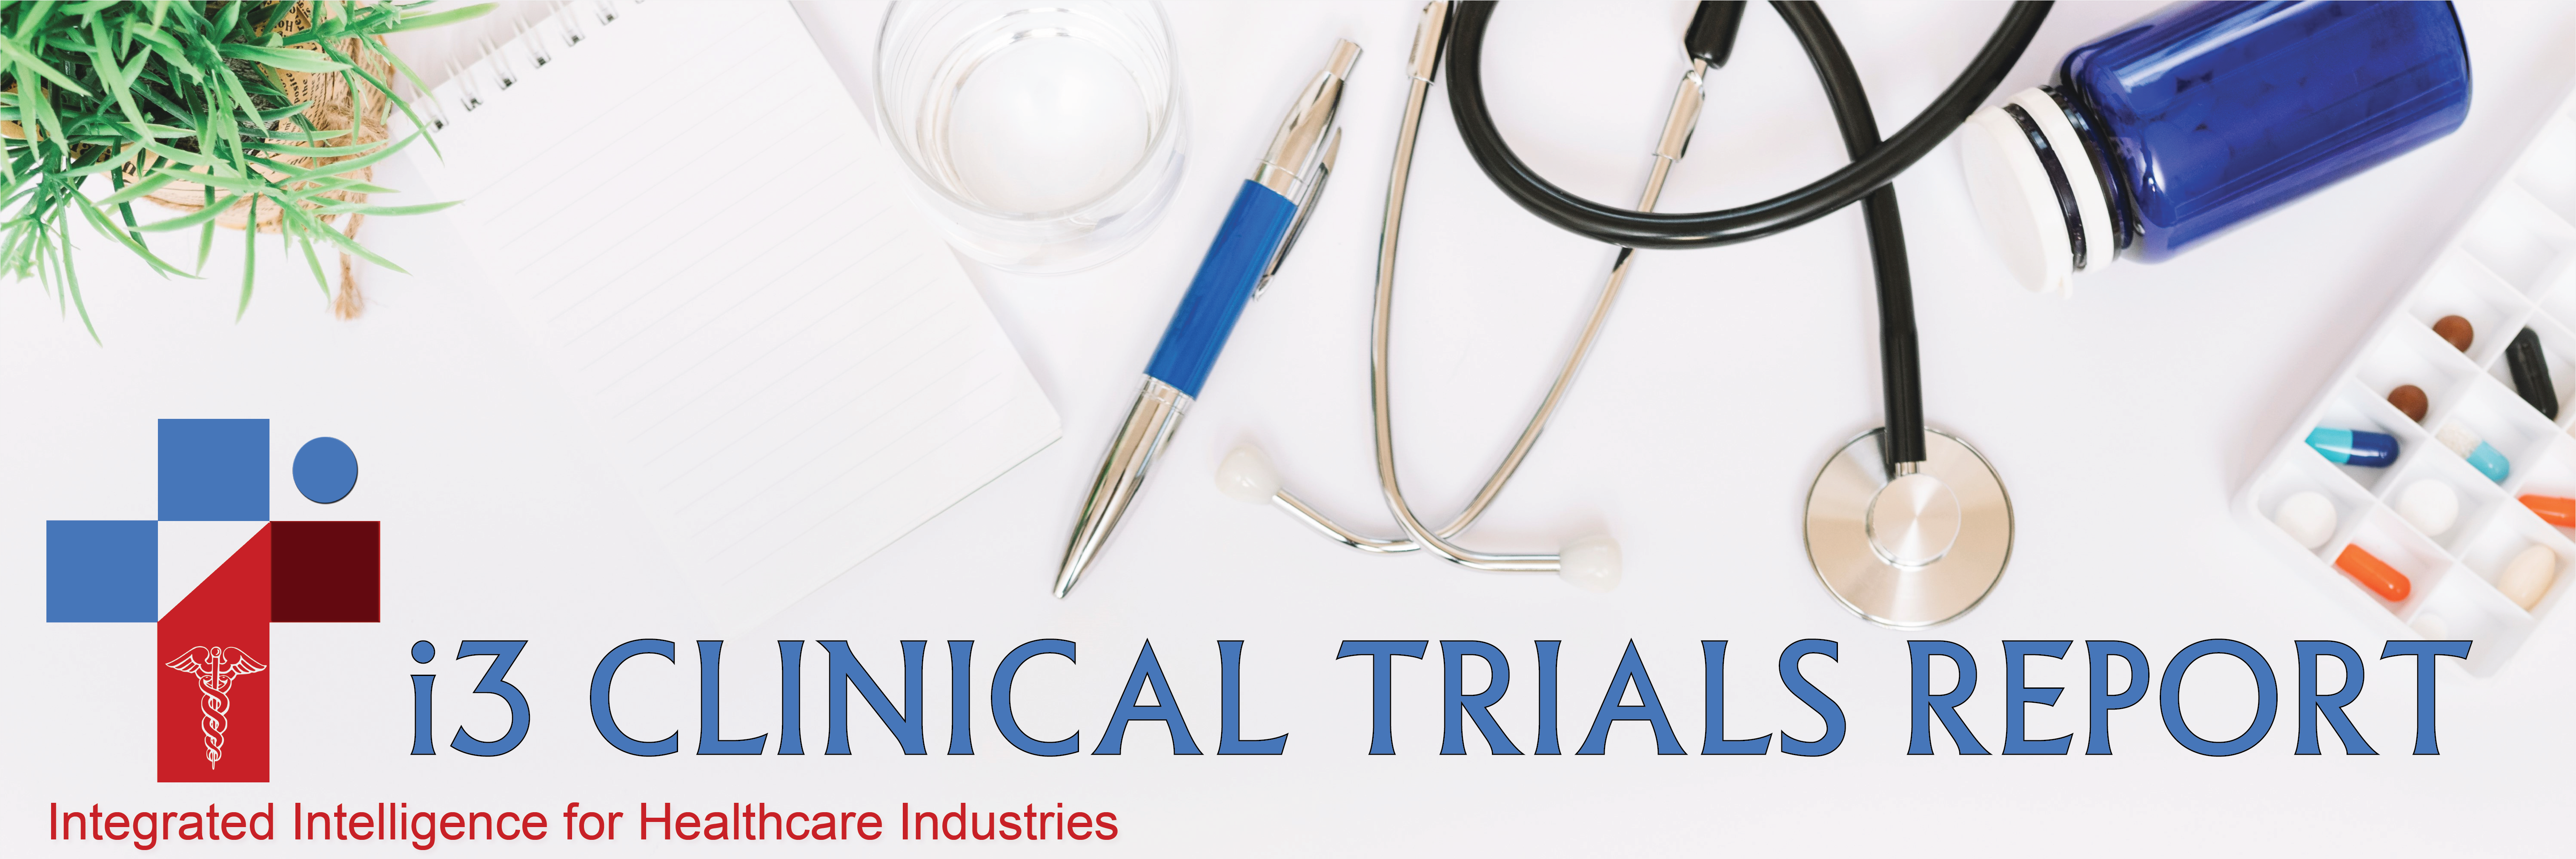 i3 Consult Clinical Trials Previous Reports